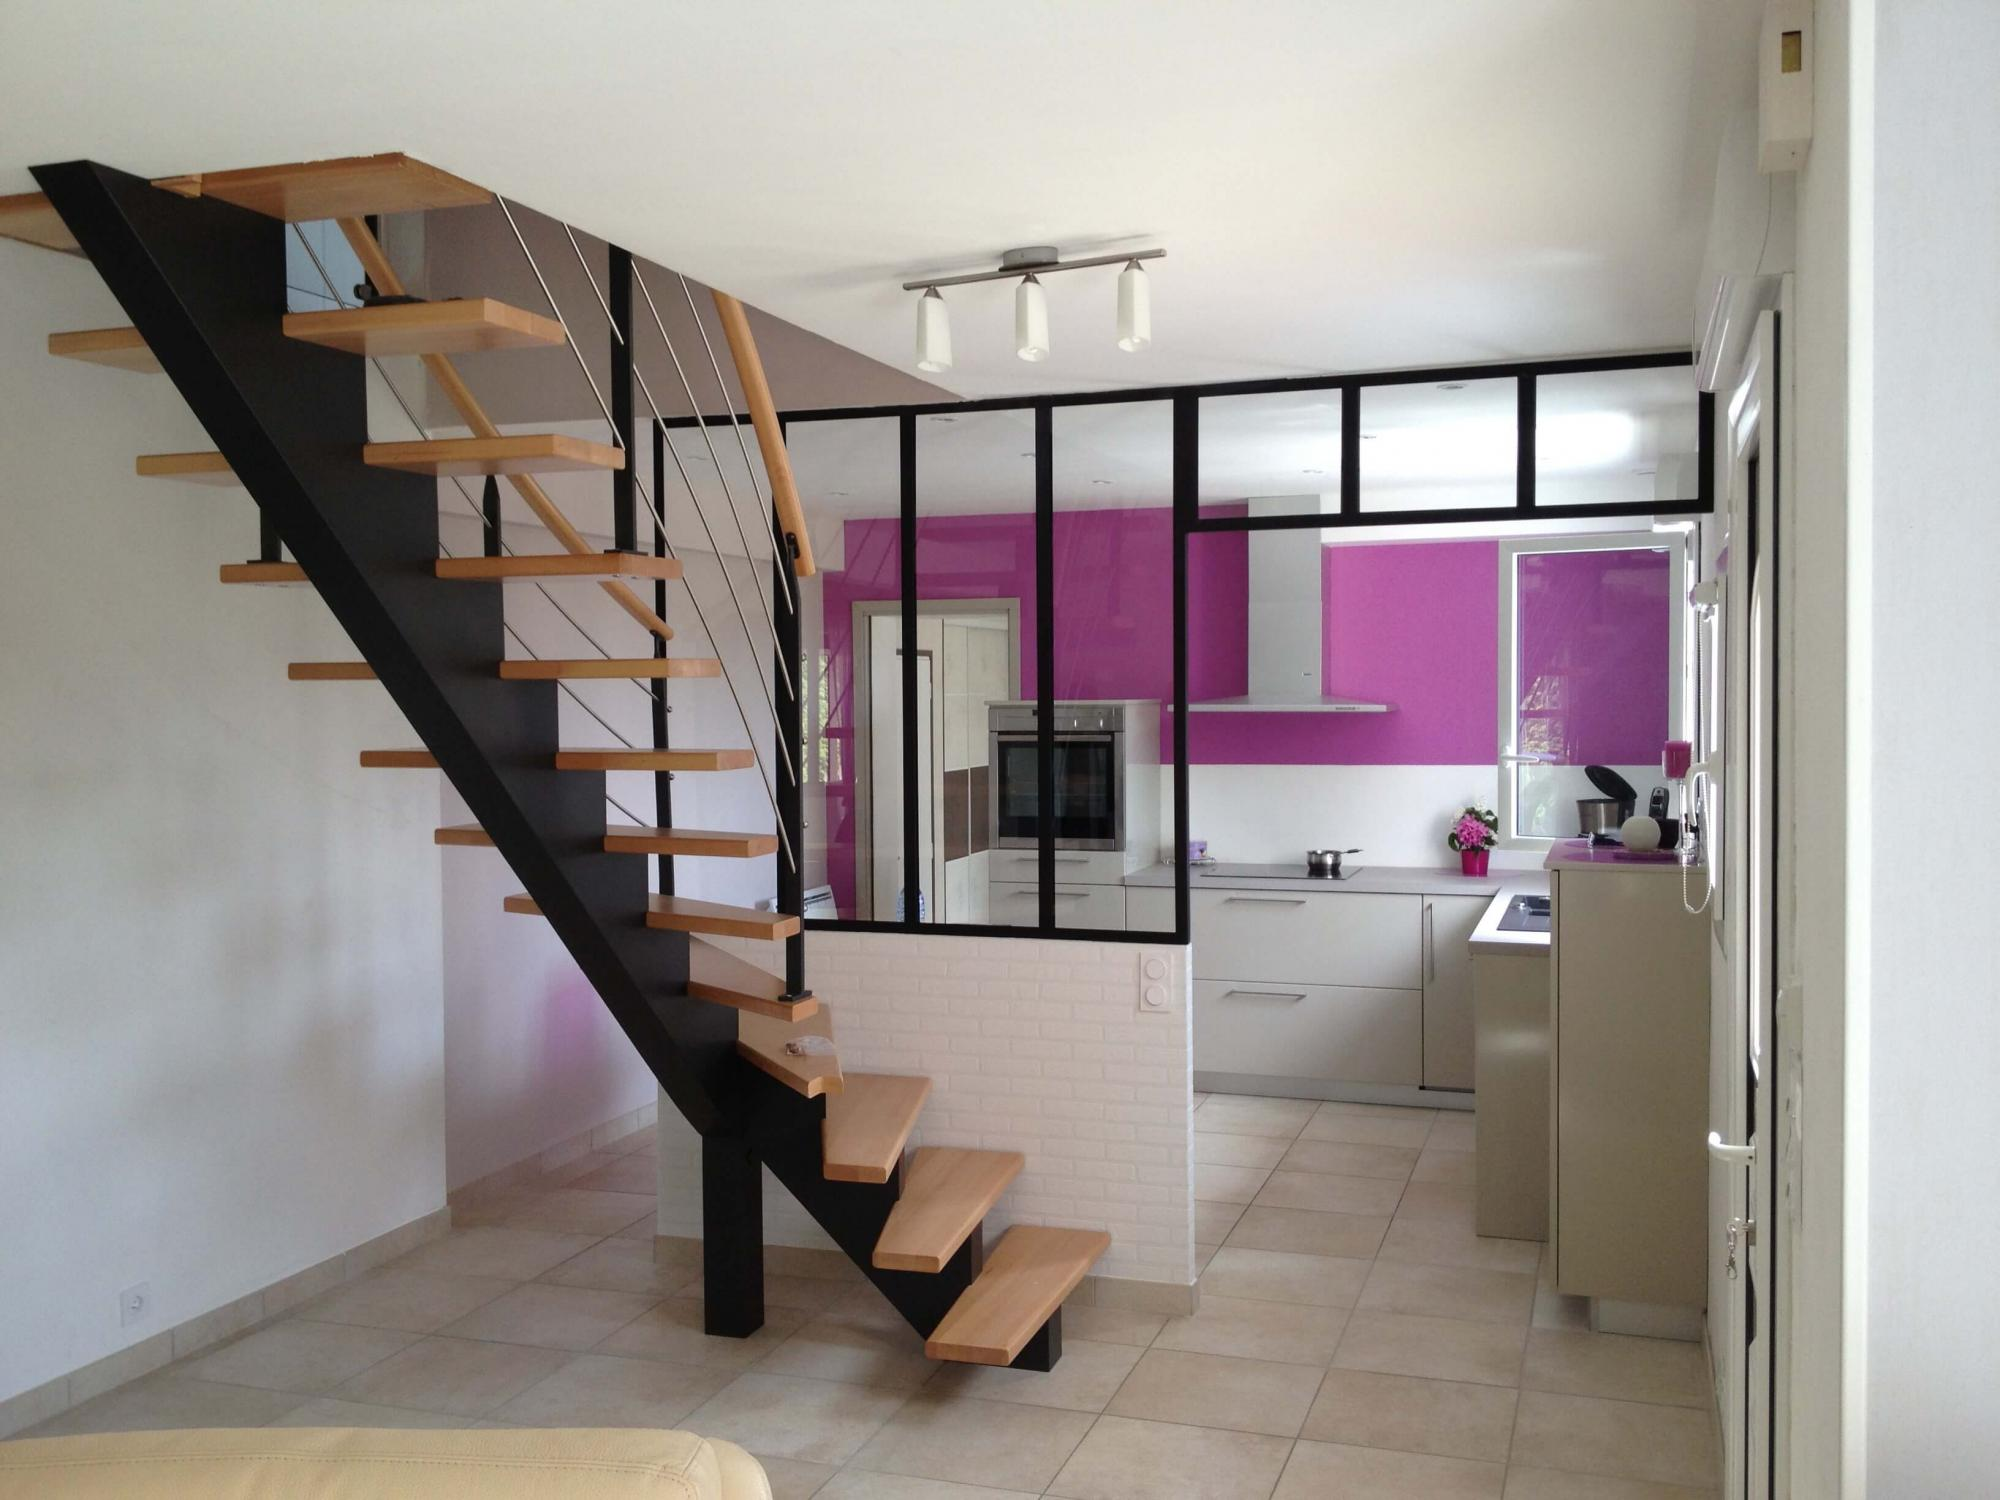 Agencement int rieur de votre maison par la menuiserie for Amenagement interieur